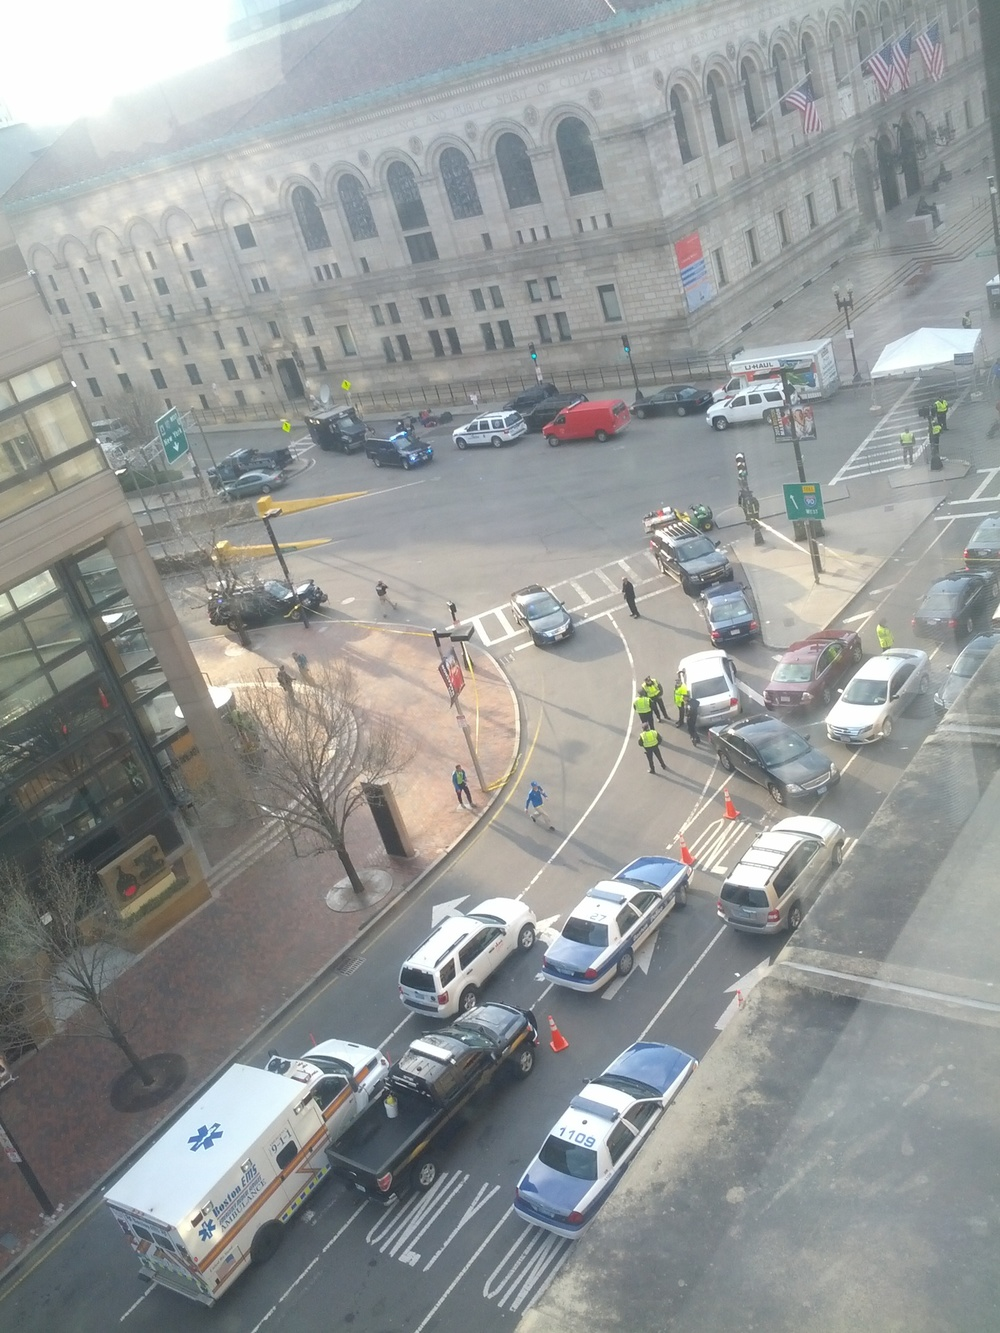 Click photo to download. Caption: The scene from the fifth floor of the Fairmont Copley Plaza in Boston following Monday's Boston Marathon bombings. Credit: Courtesy of Kevin Goodman.